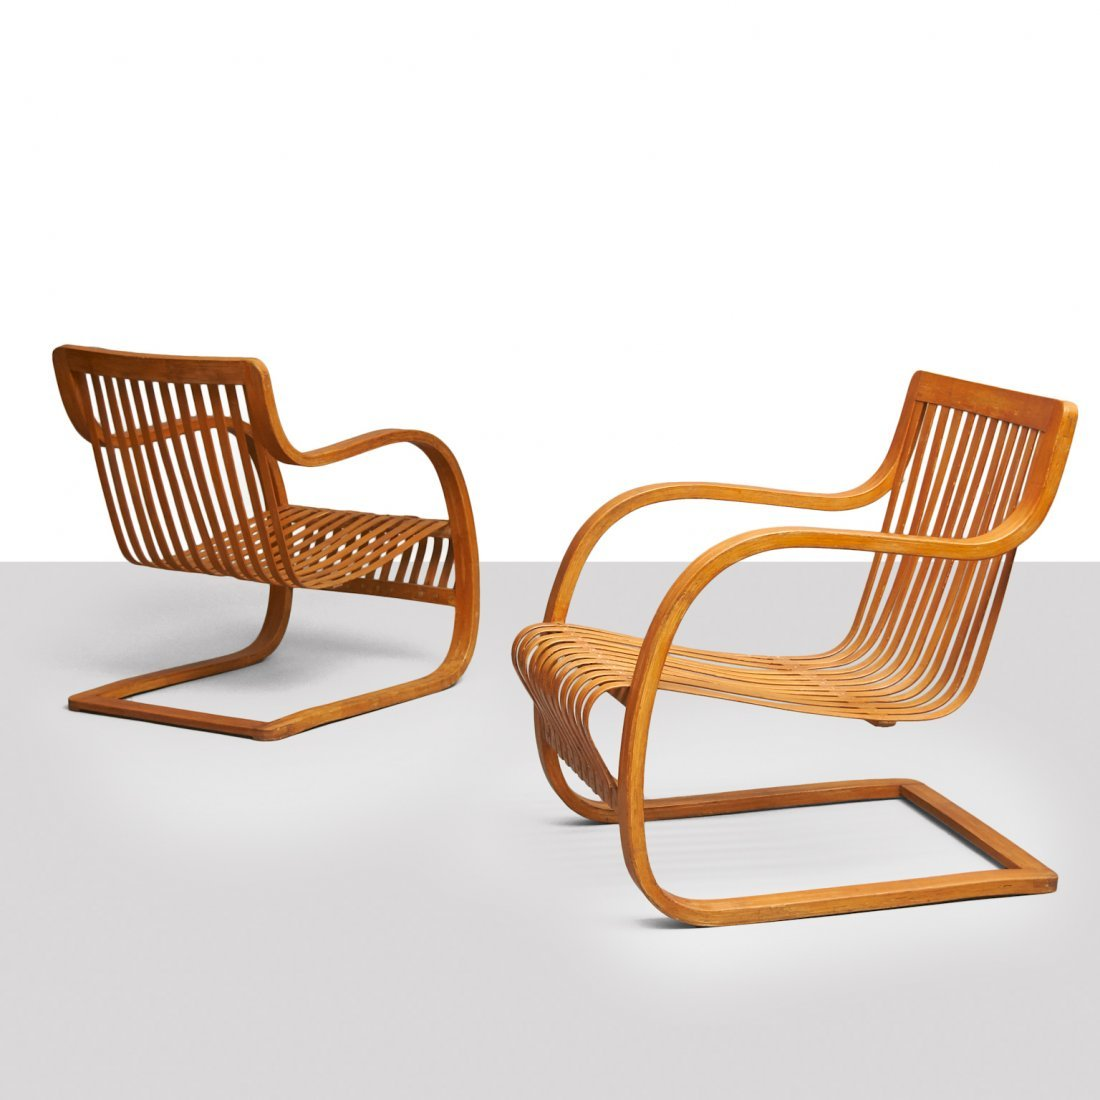 Charlotte Perriand, Lounge Chairs